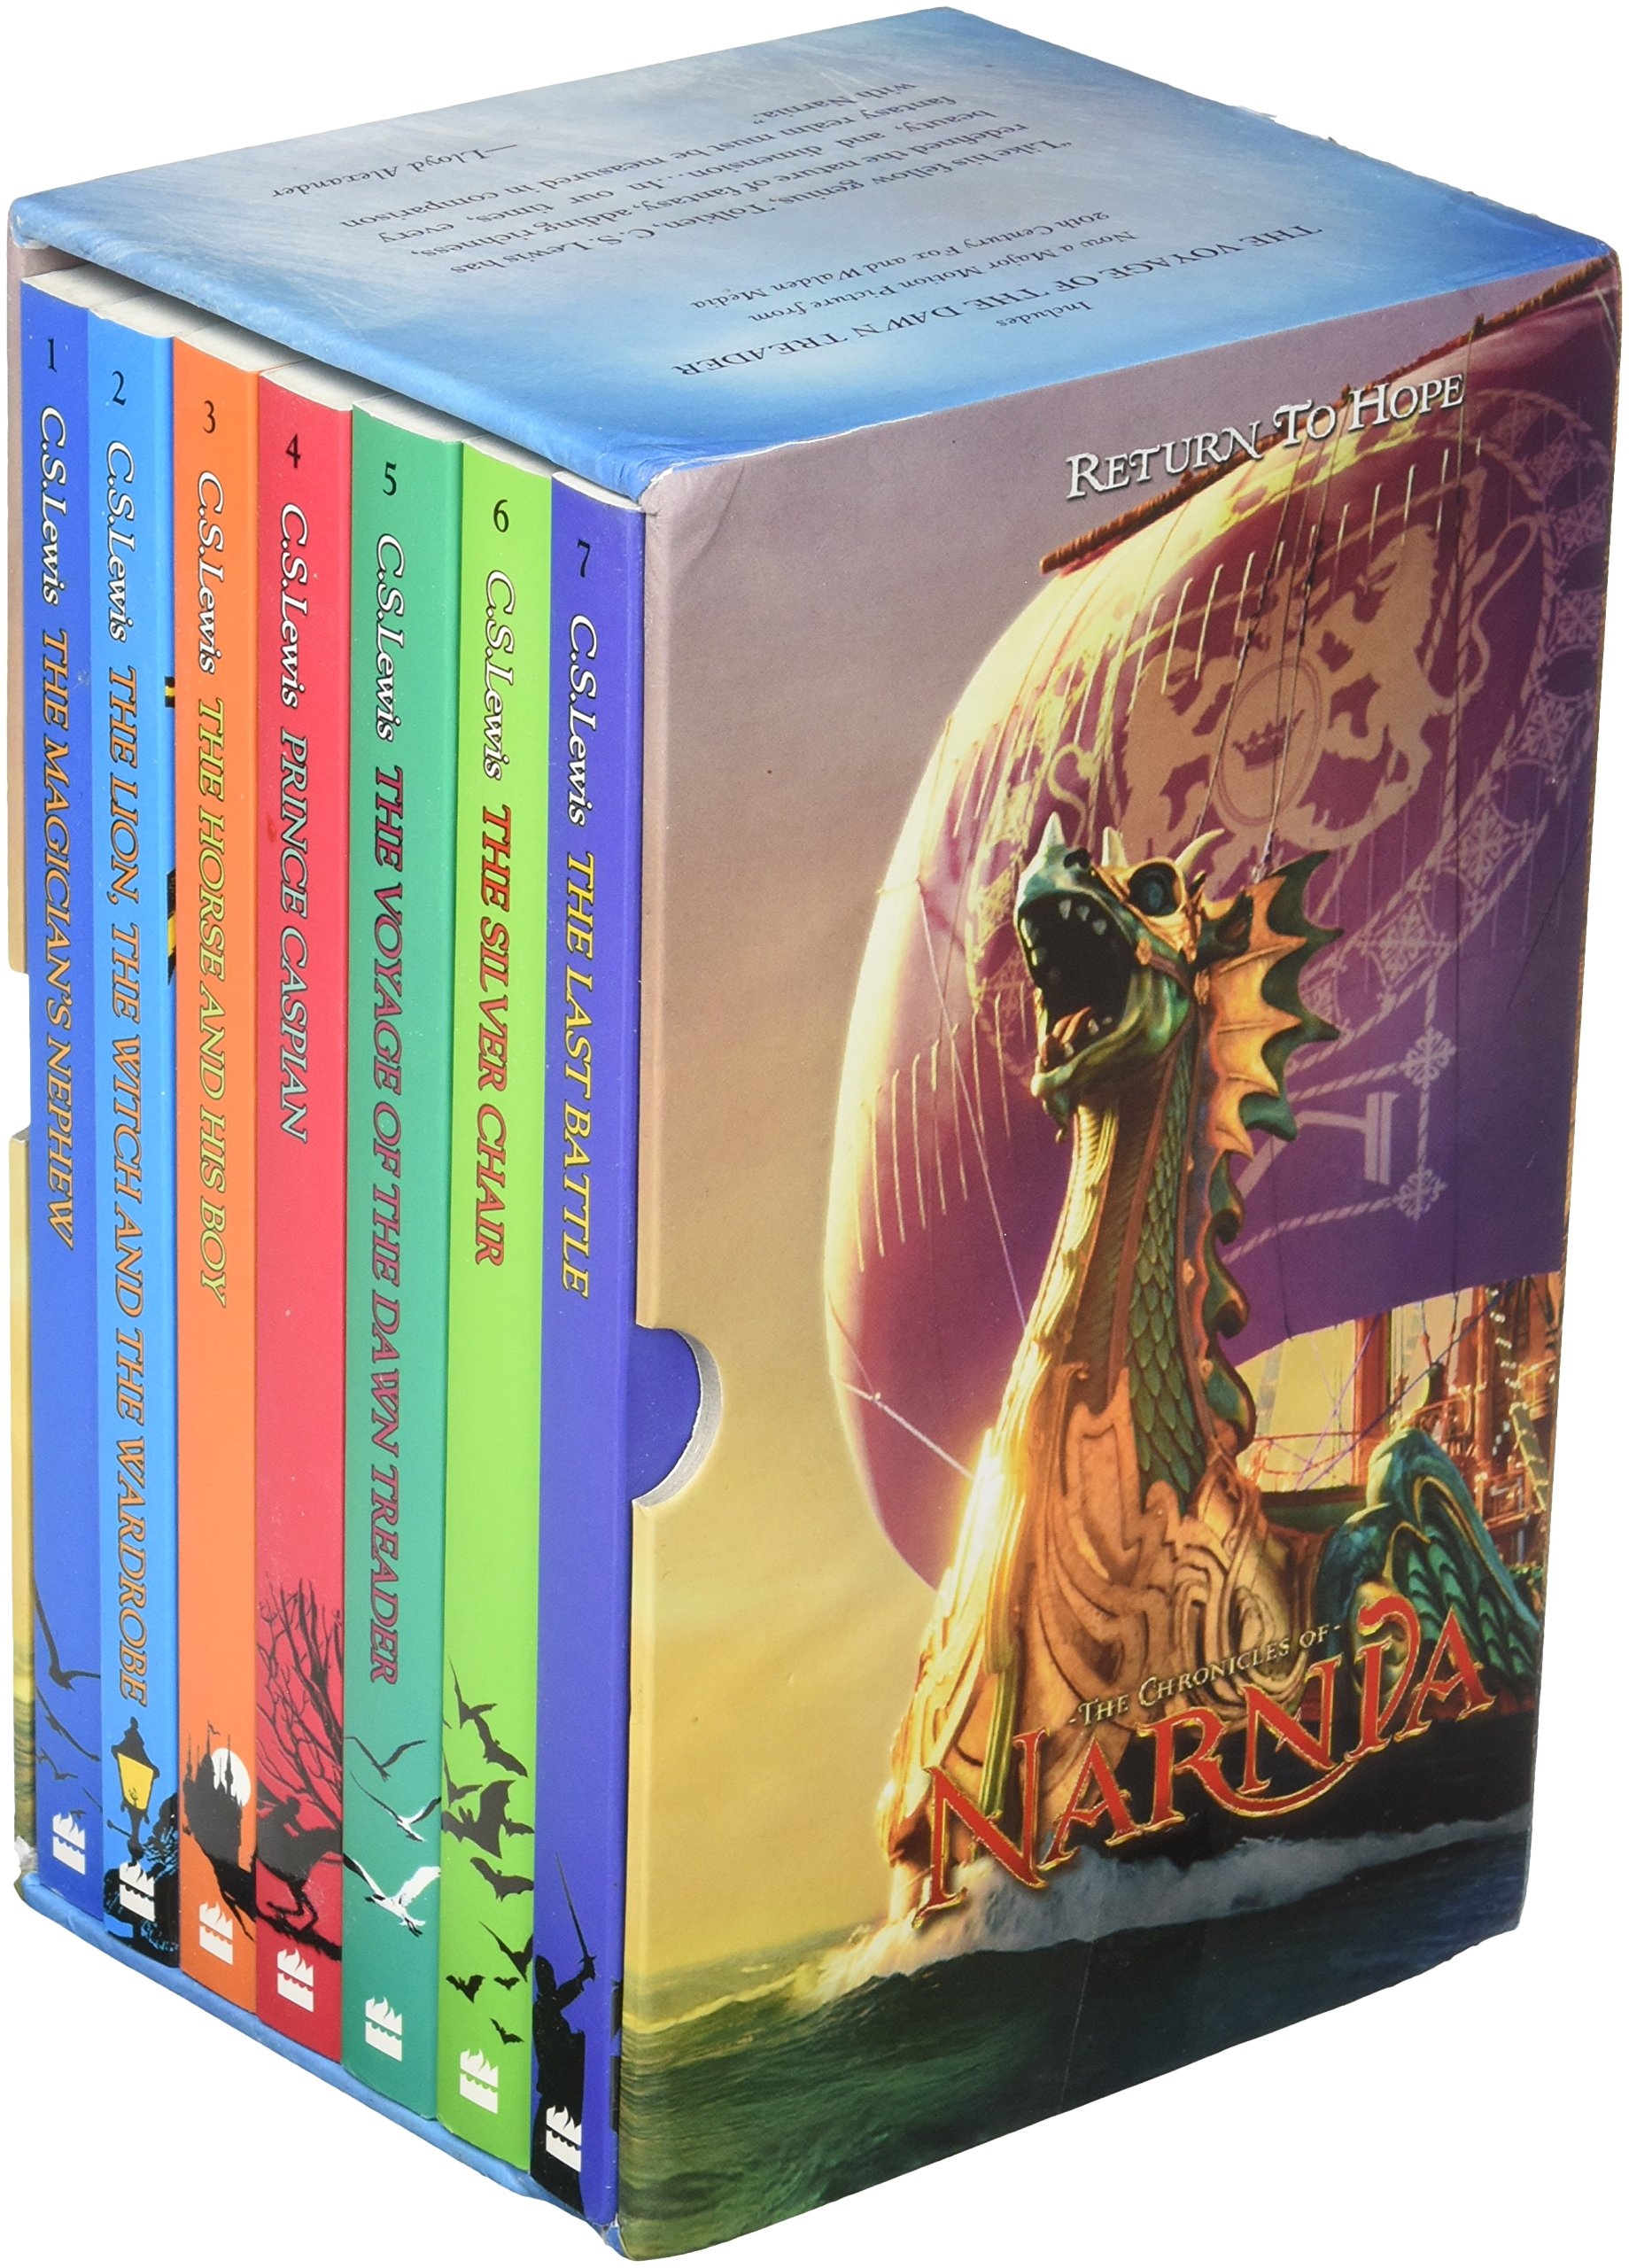 Narnia Books In Hindi Pdf